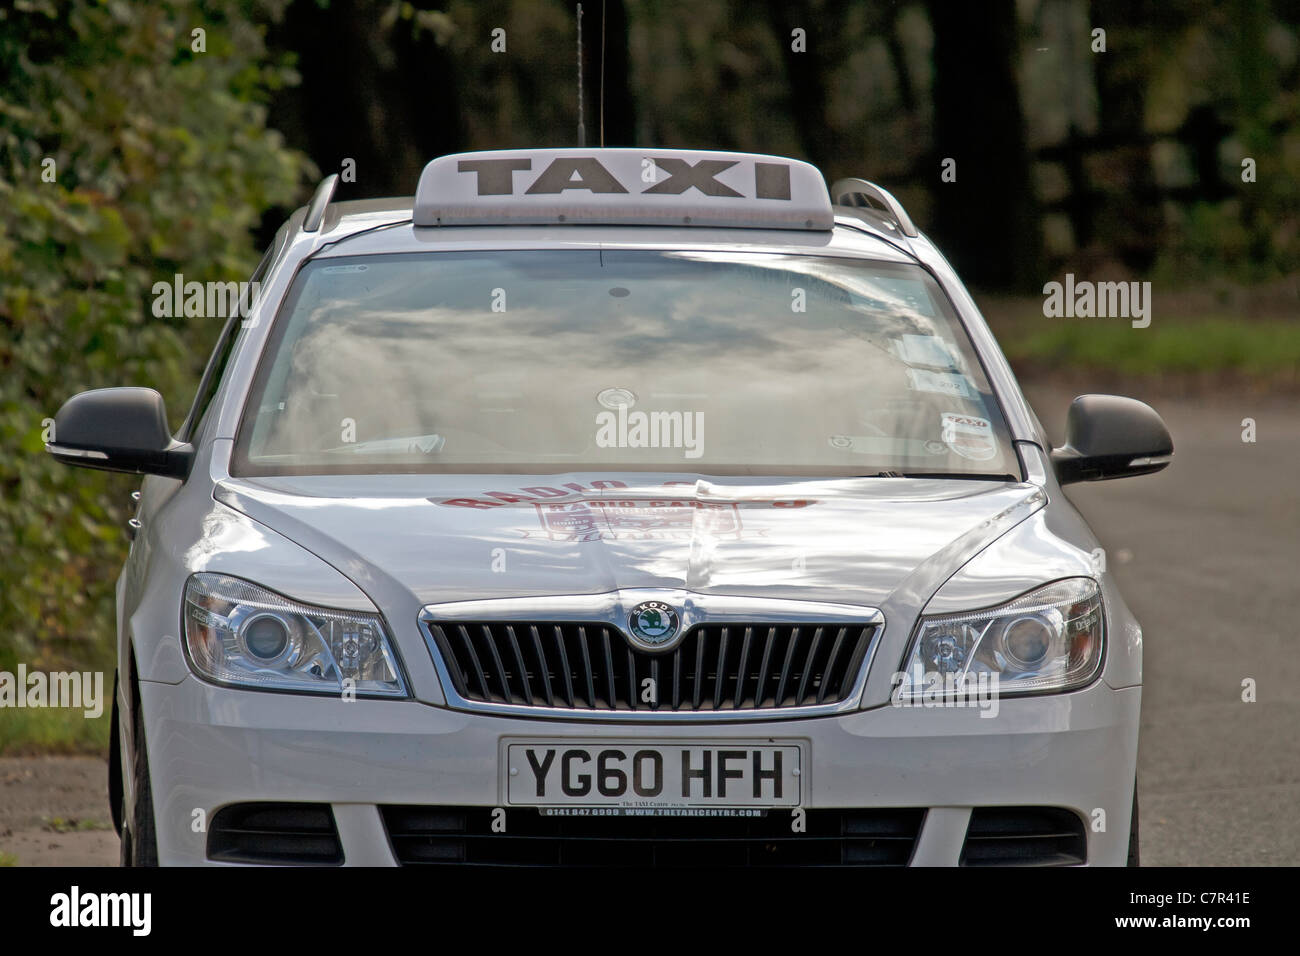 Front View Of A Skoda Taxi With Sign In White Stock Photo 39231402